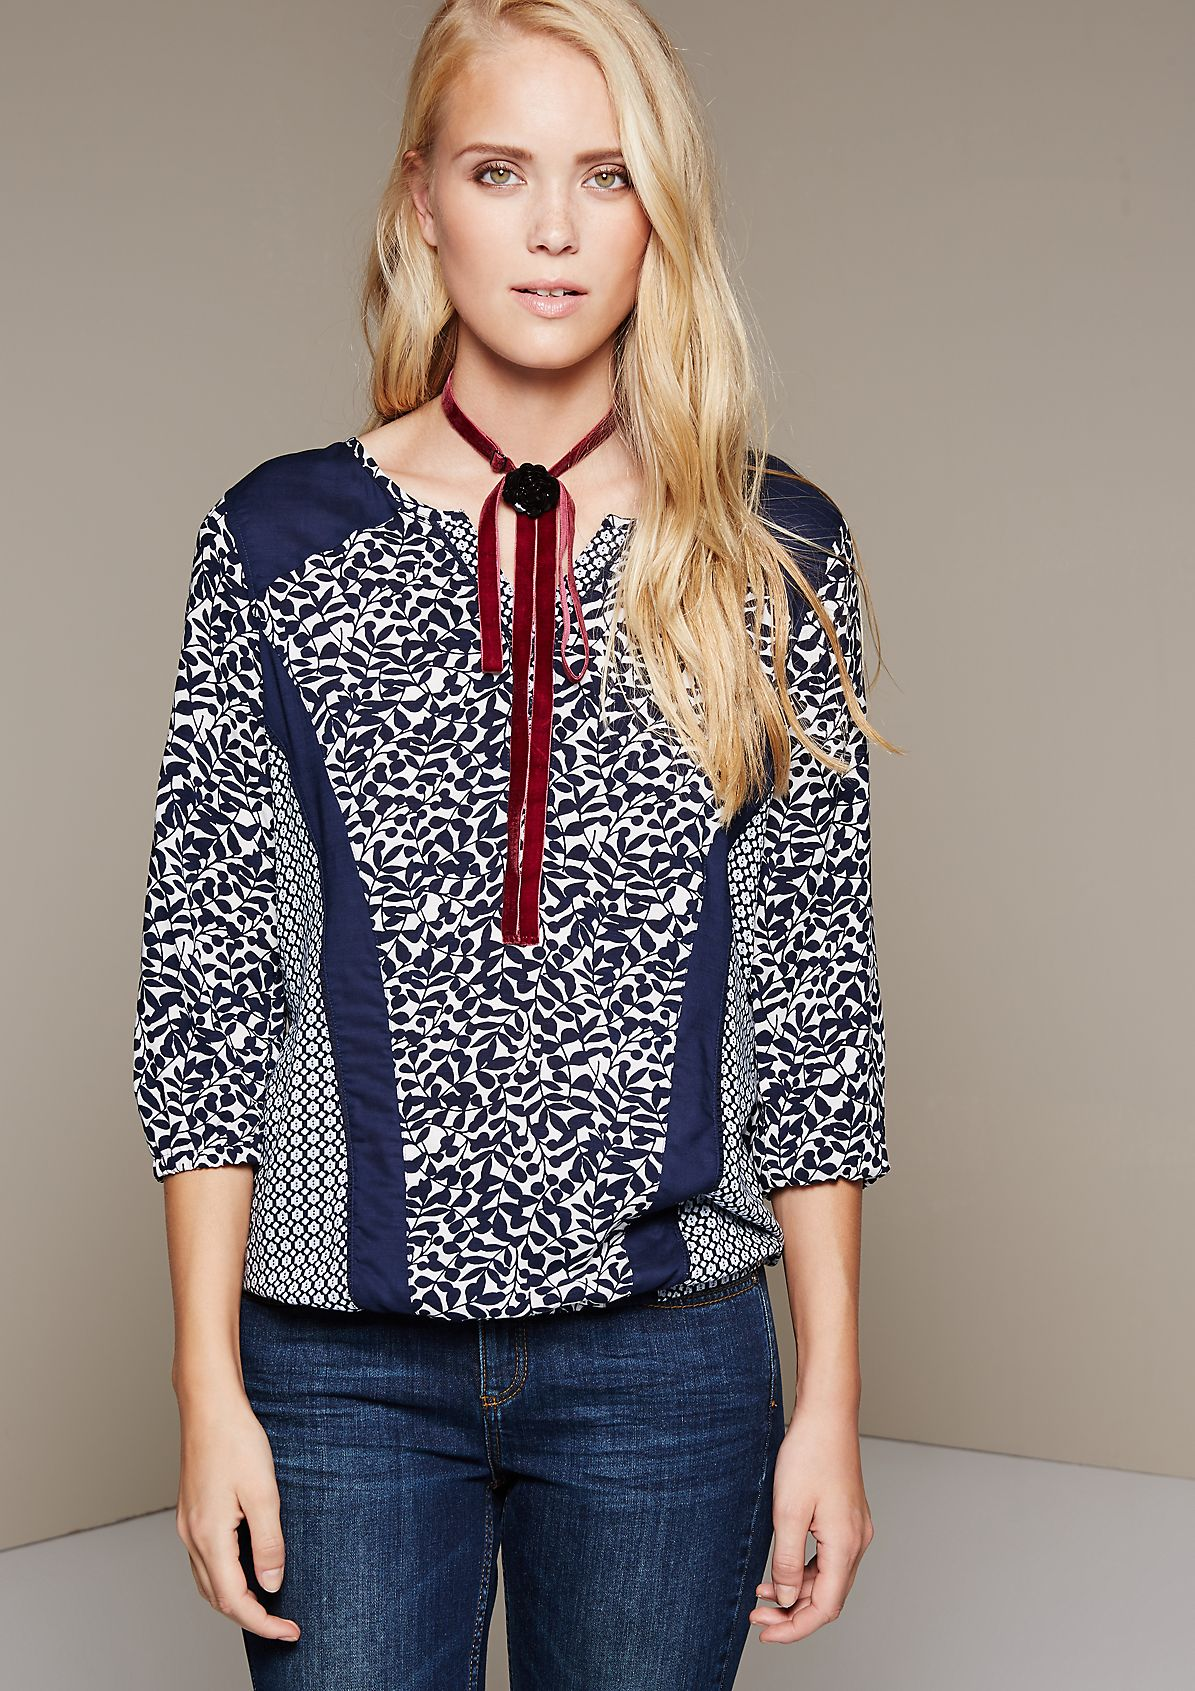 Summery blouse with a sophisticated mixed pattern and 3/4-length sleeves from s.Oliver